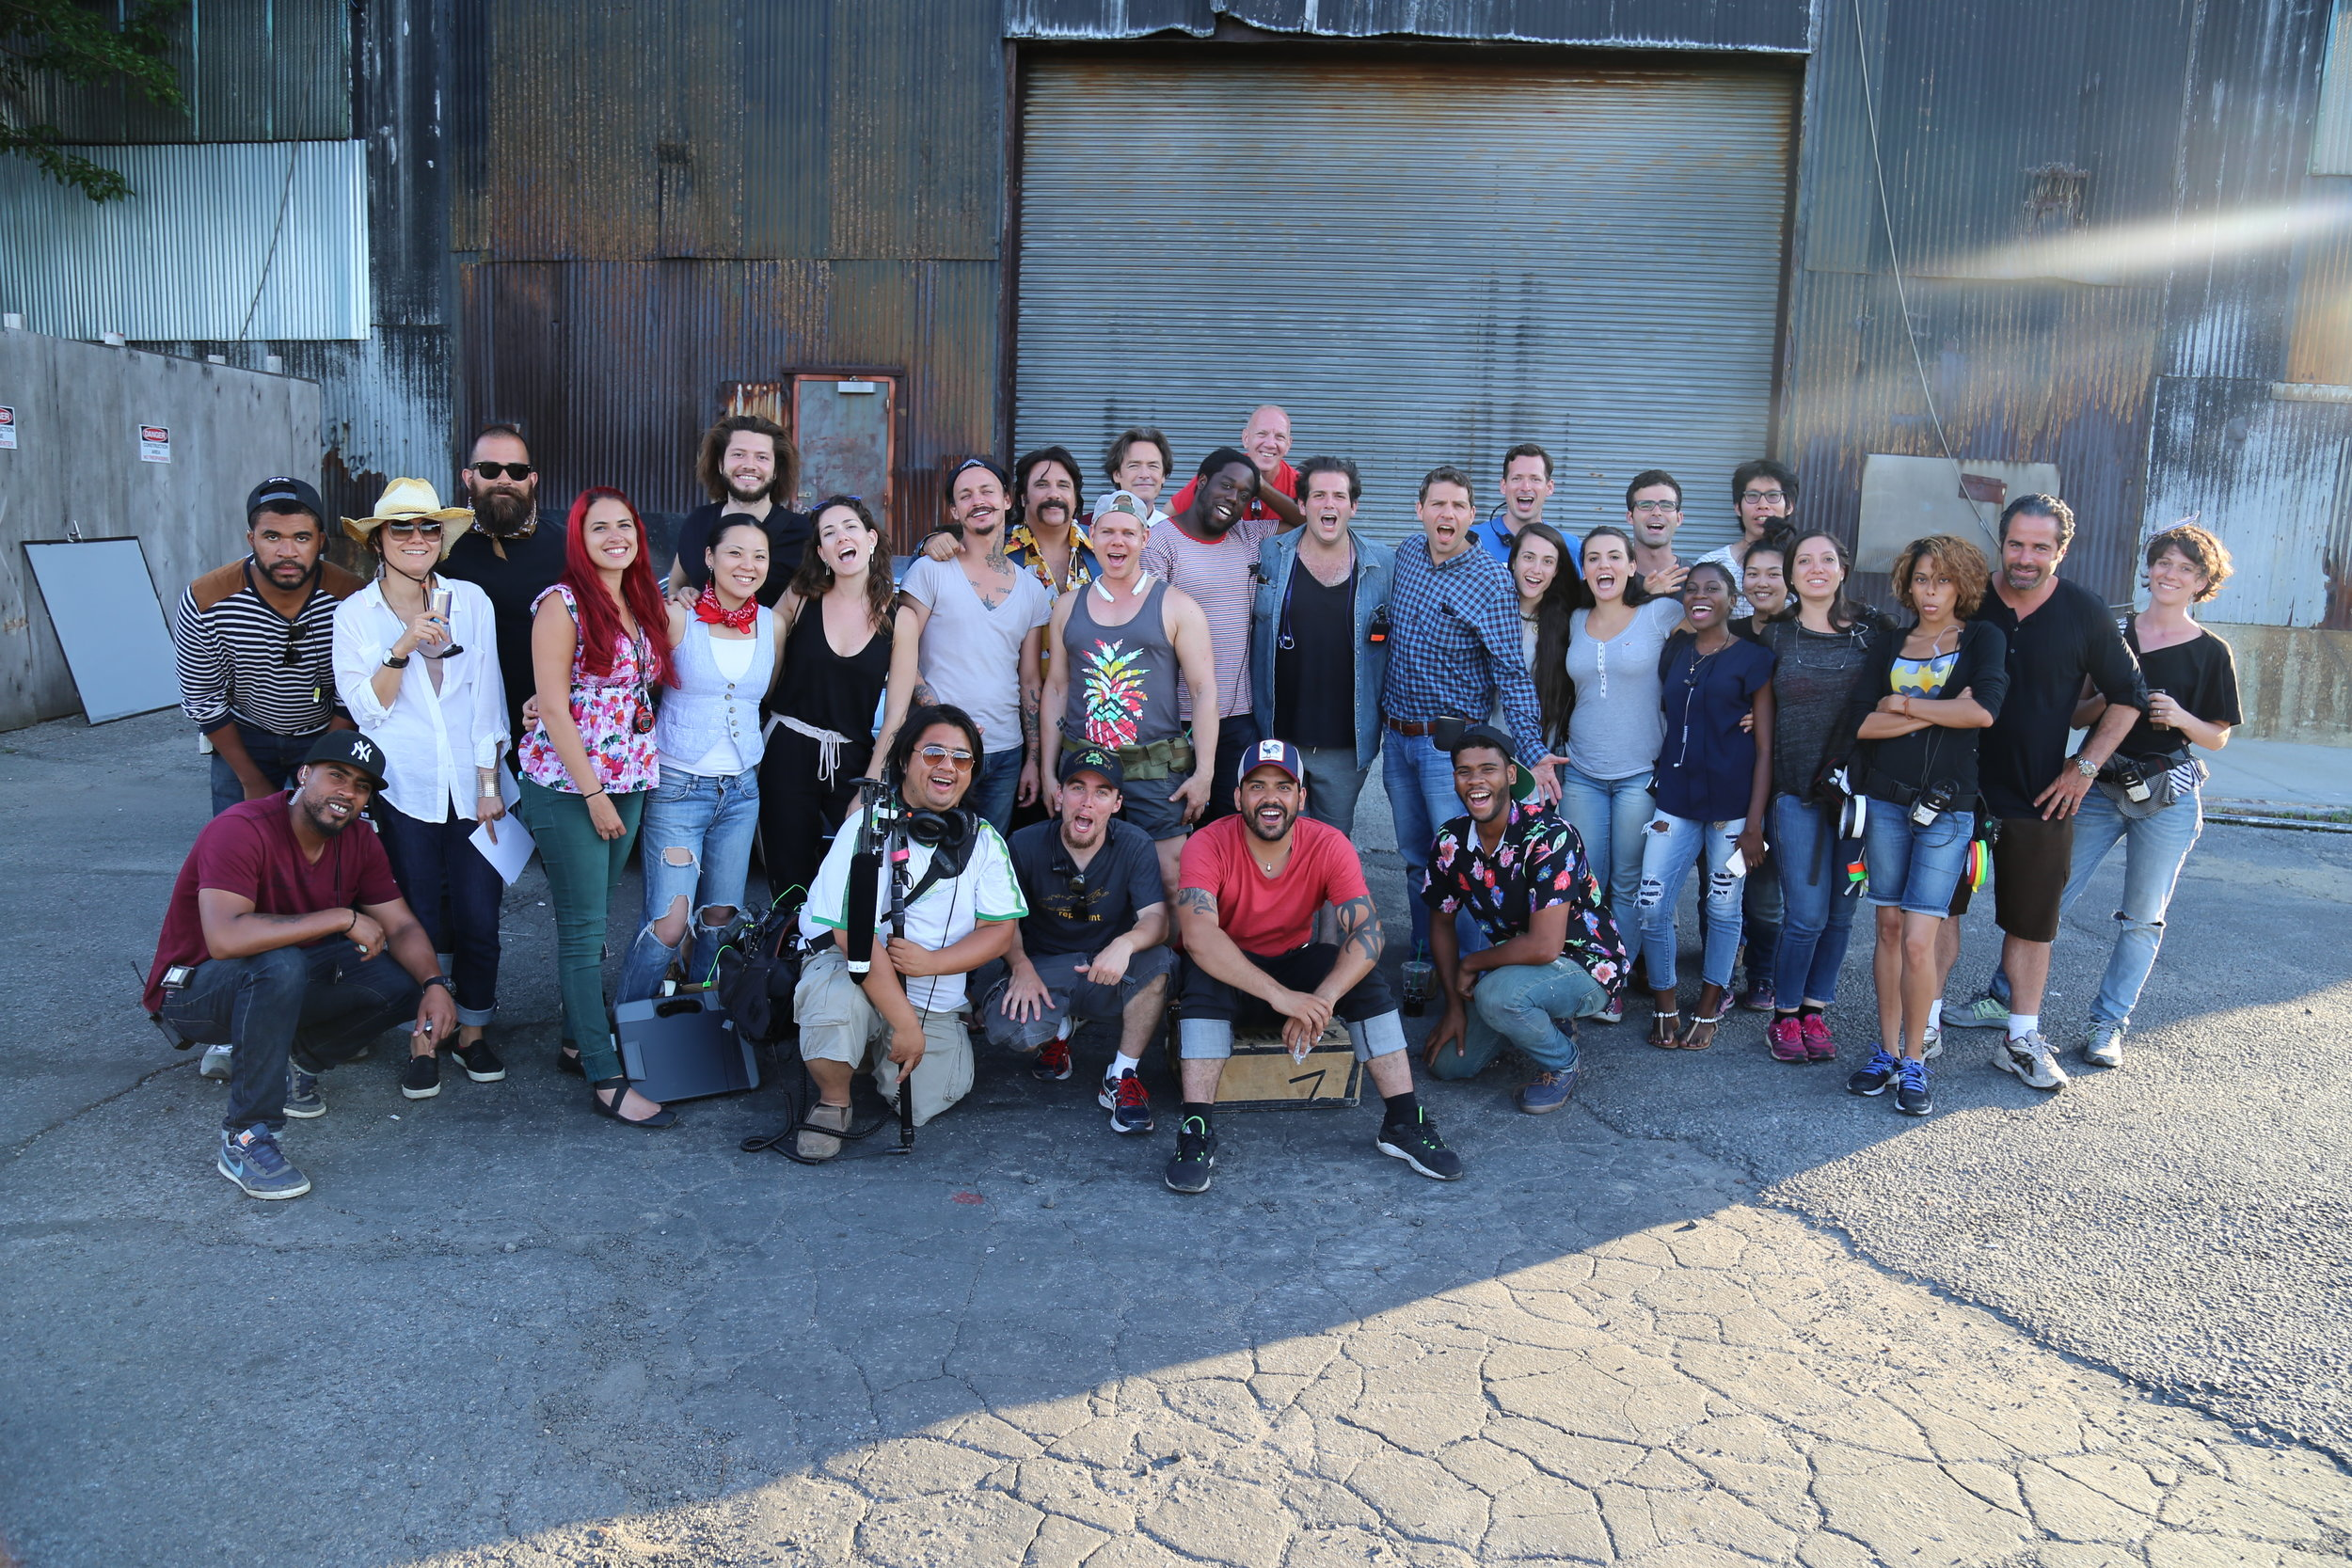 Oiled Up - Cast and Crew